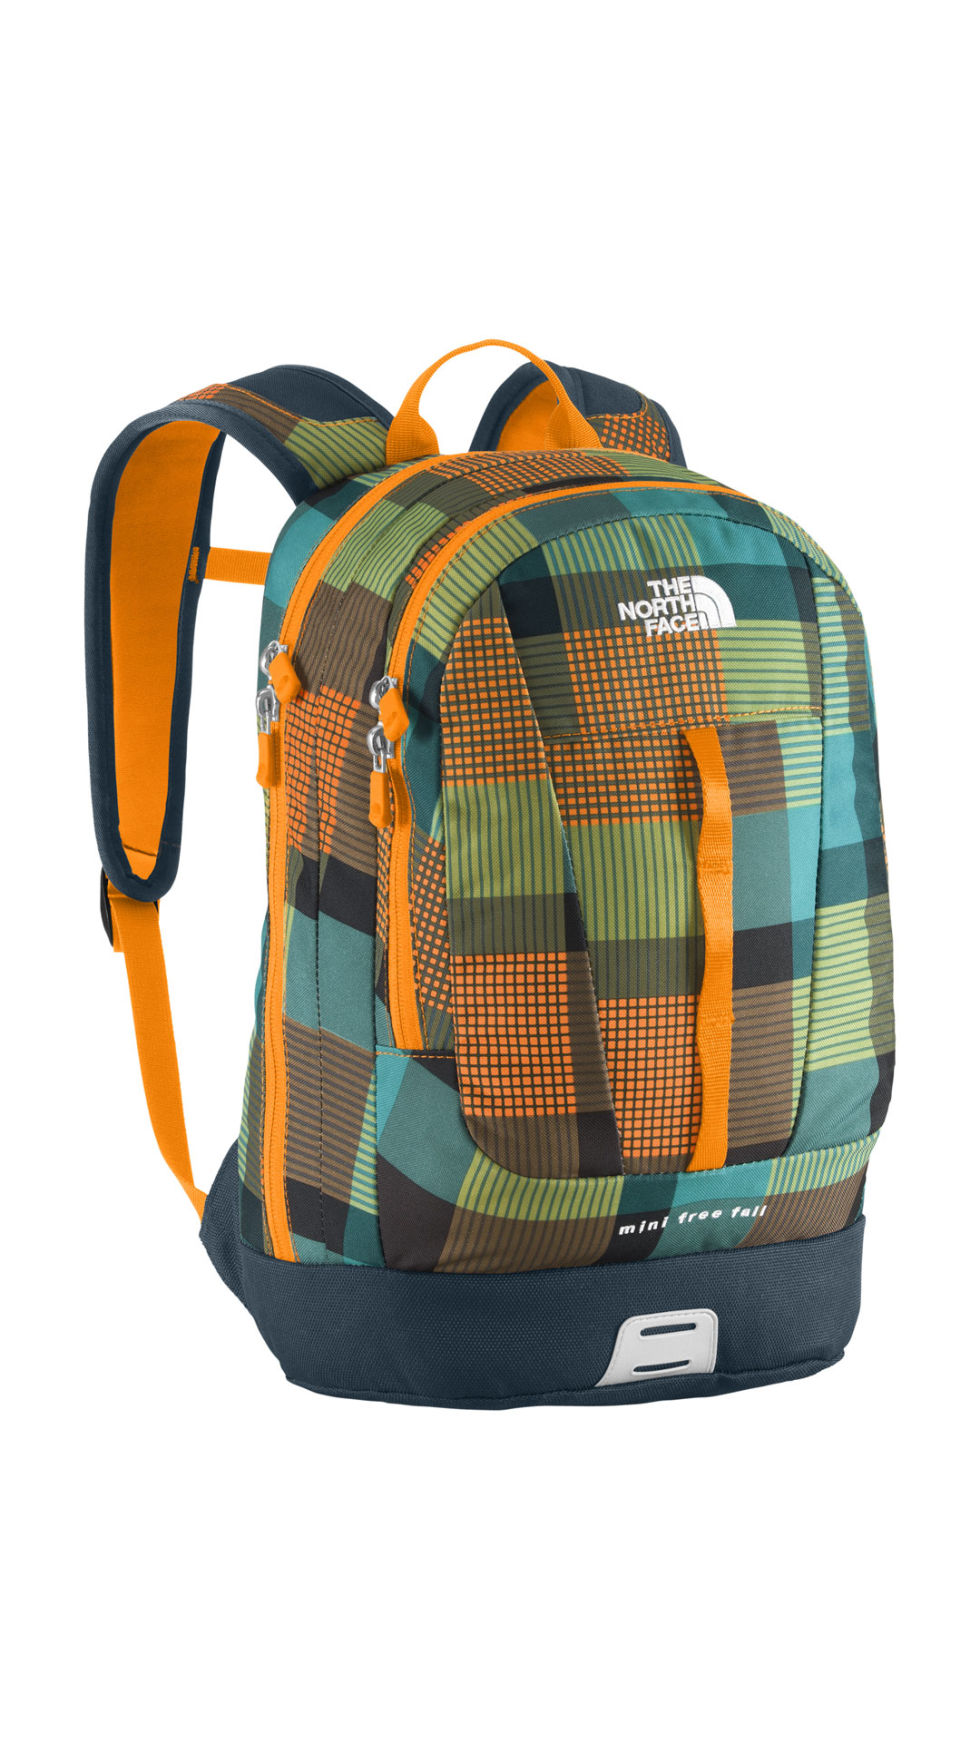 Best Kids Backpacks 9M37VZWD